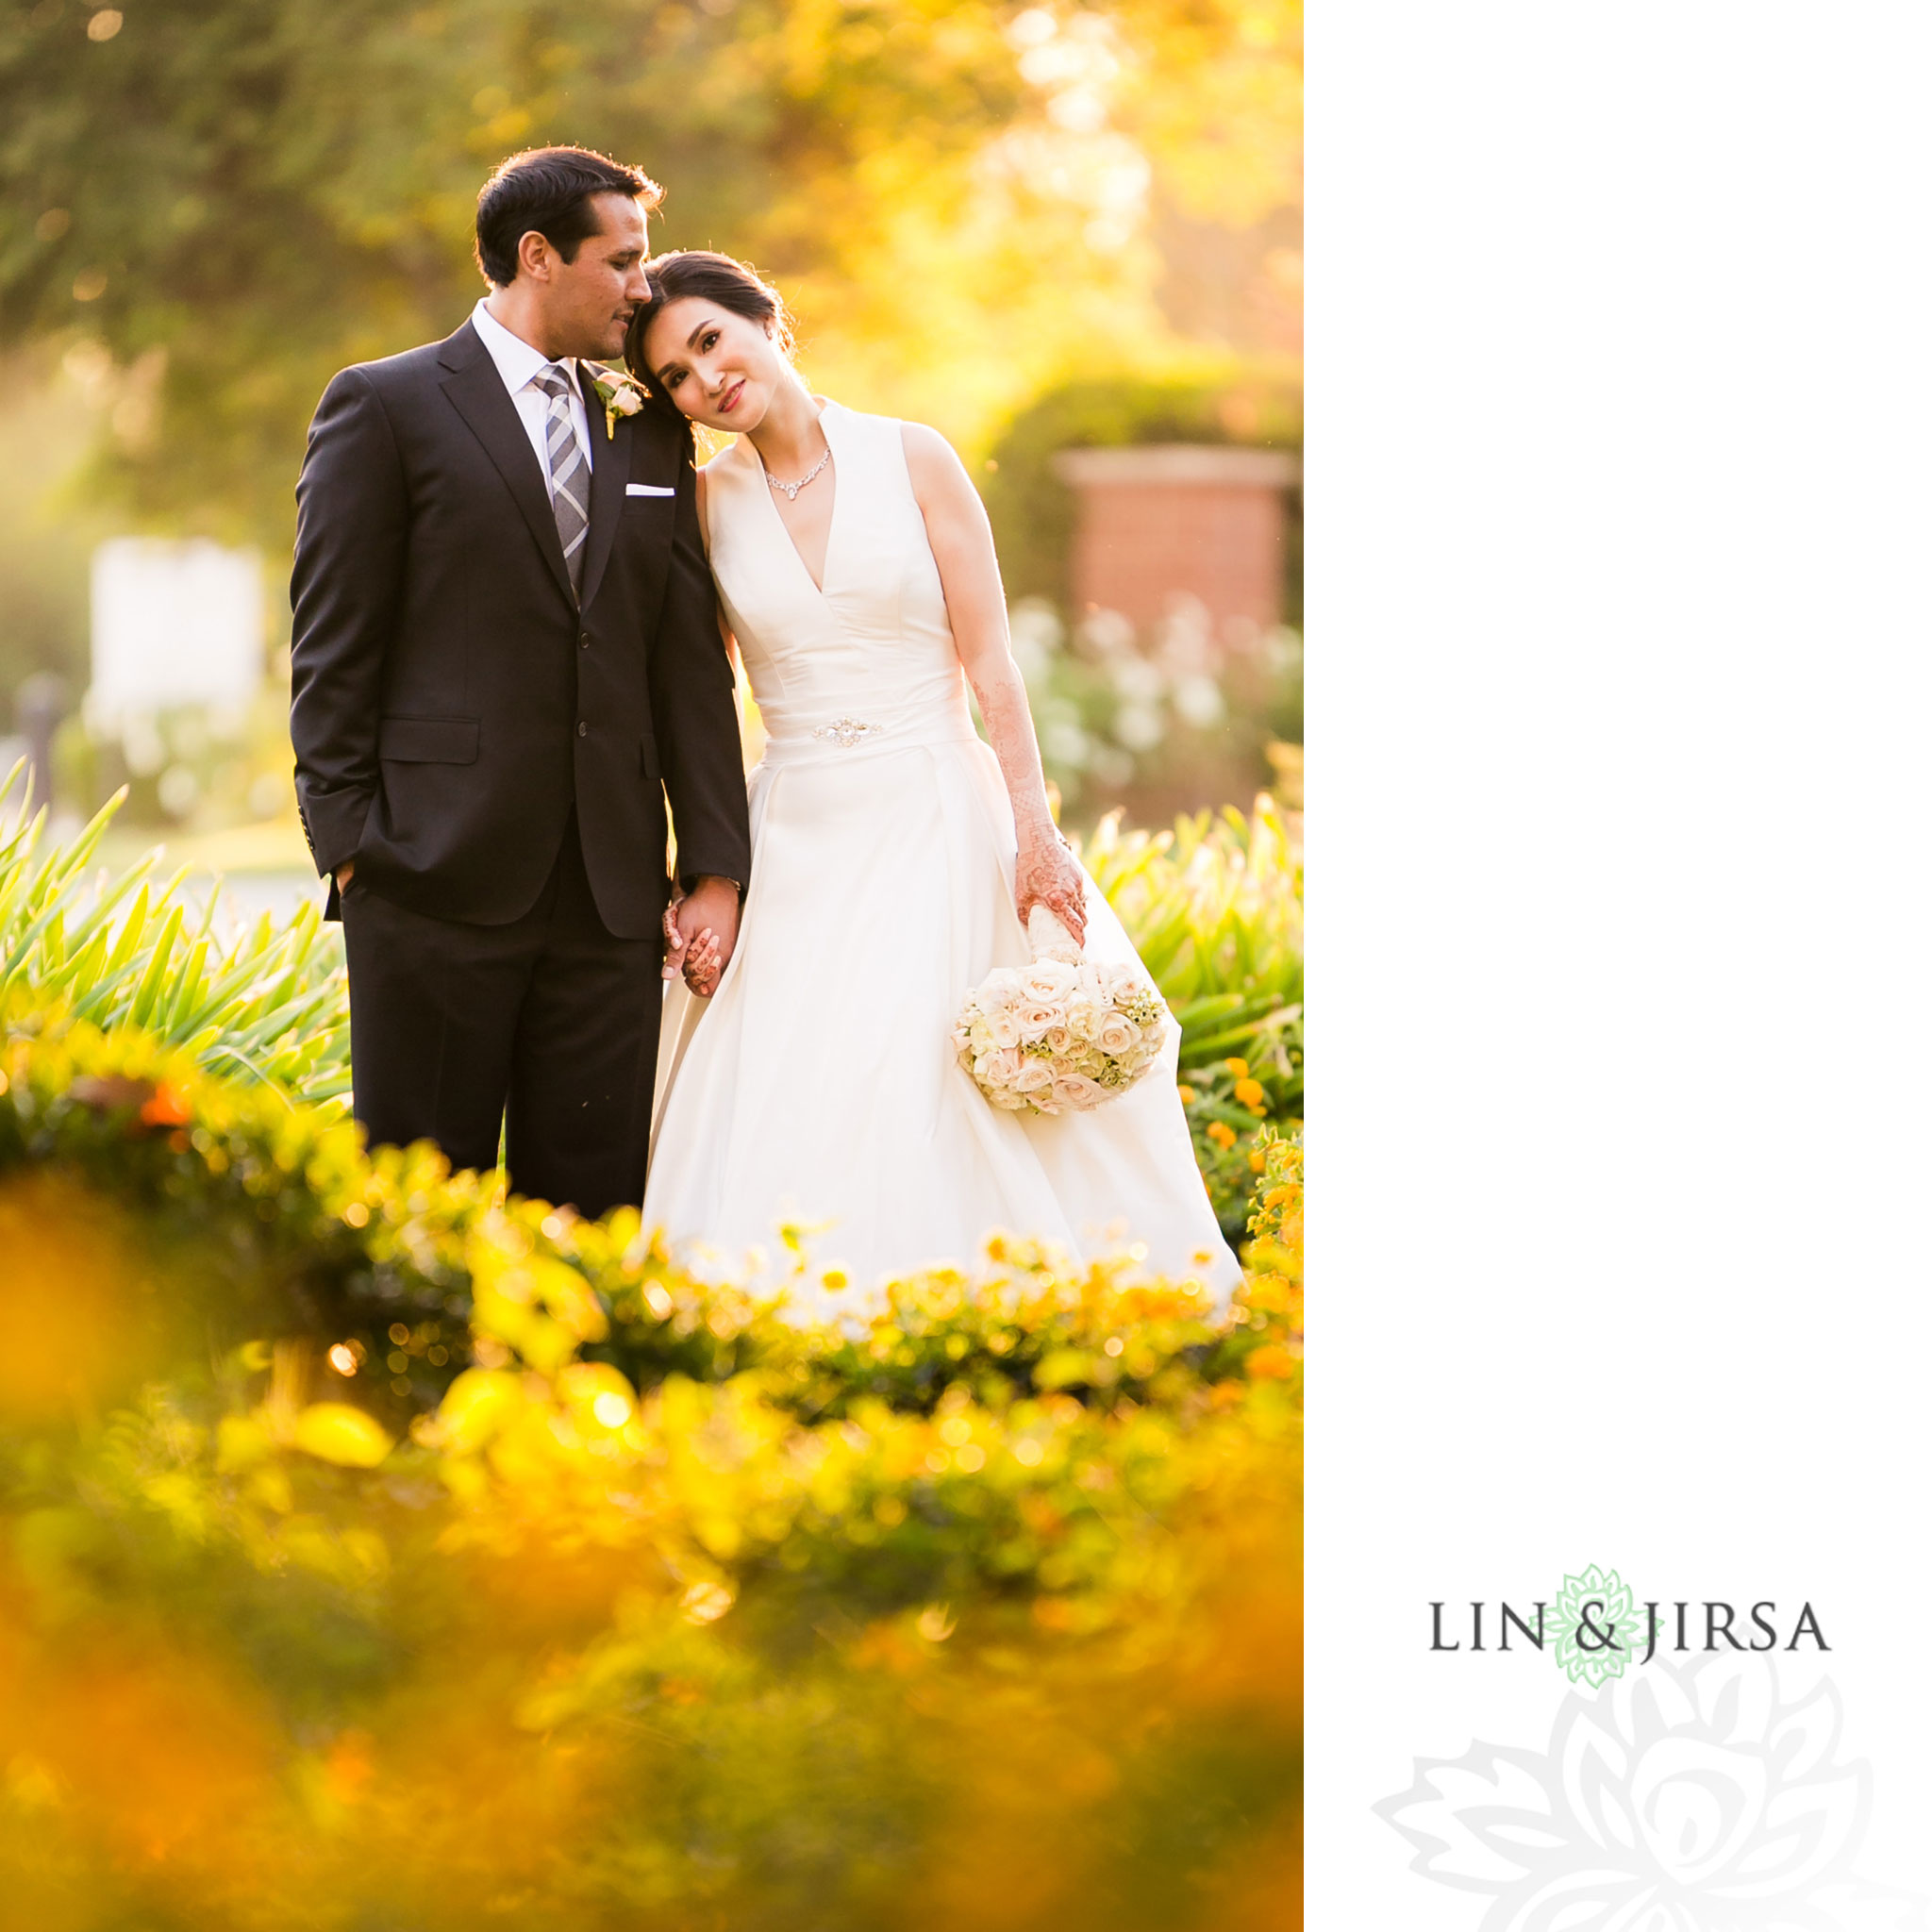 36 four seasons westlake village indian wedding photography